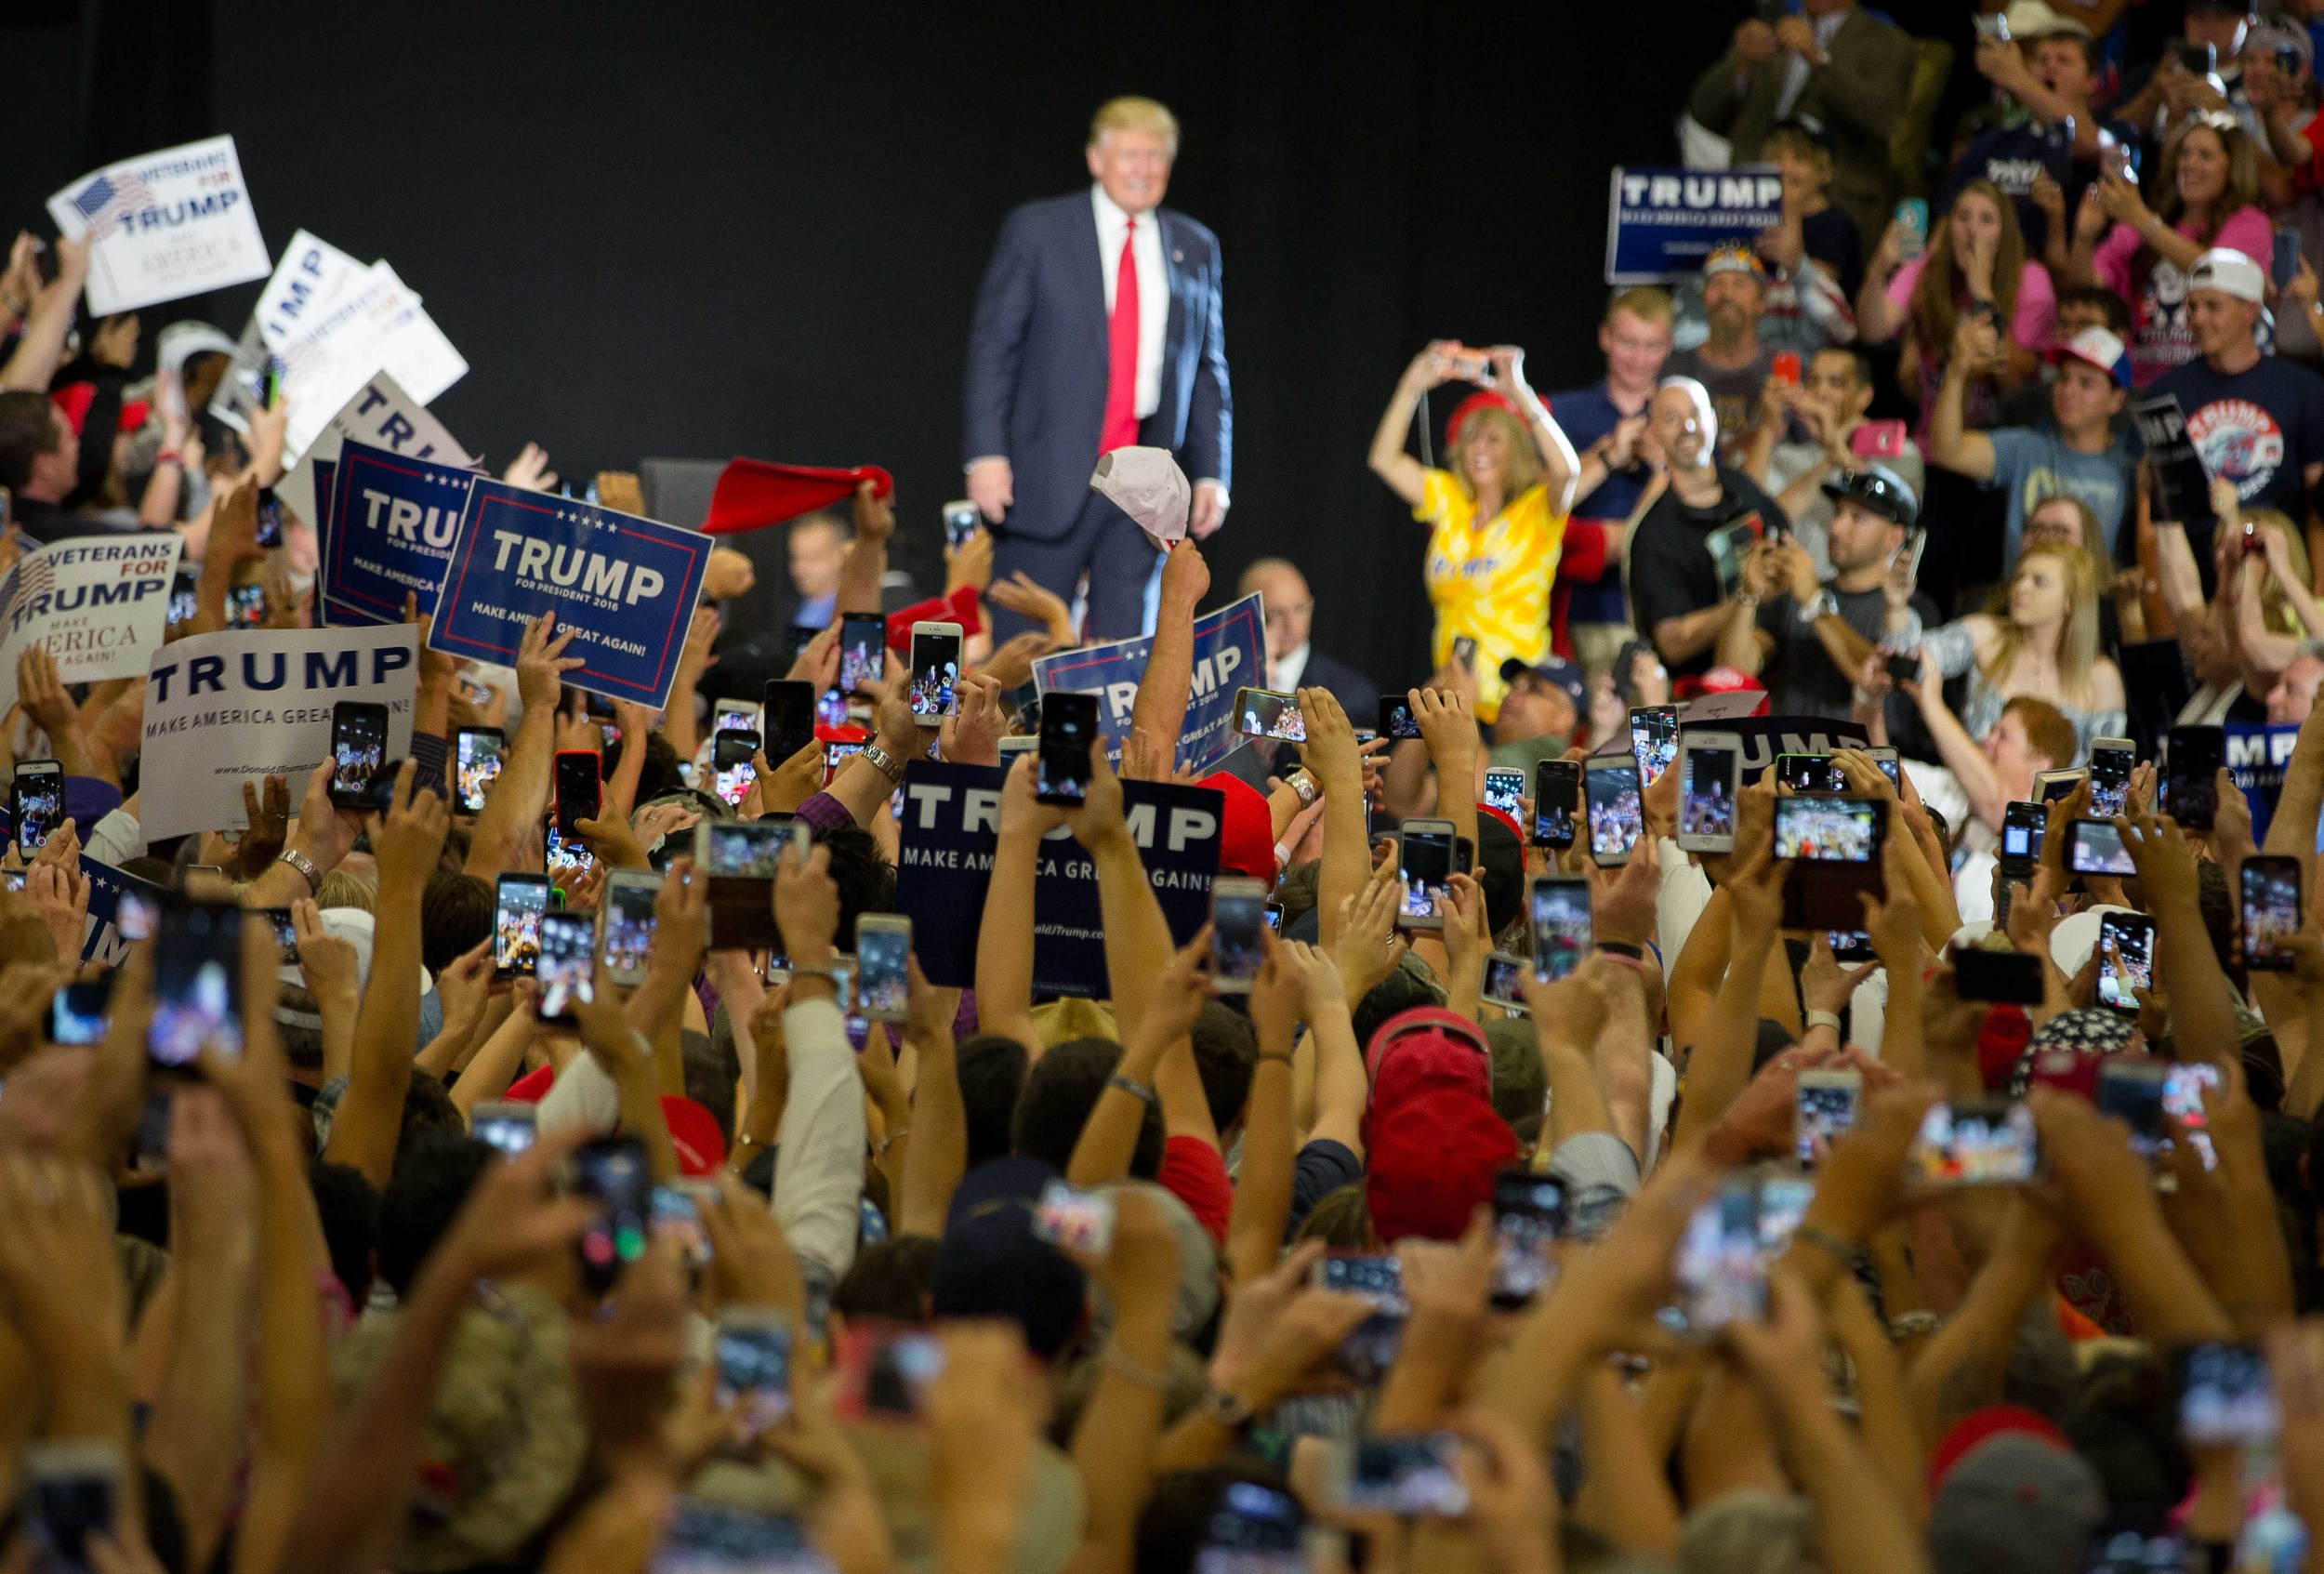 People inside the Albuquerque Convention Center takes photos of presidential candidate Donald Trump as walks towards a a podium, May 24, 2016.